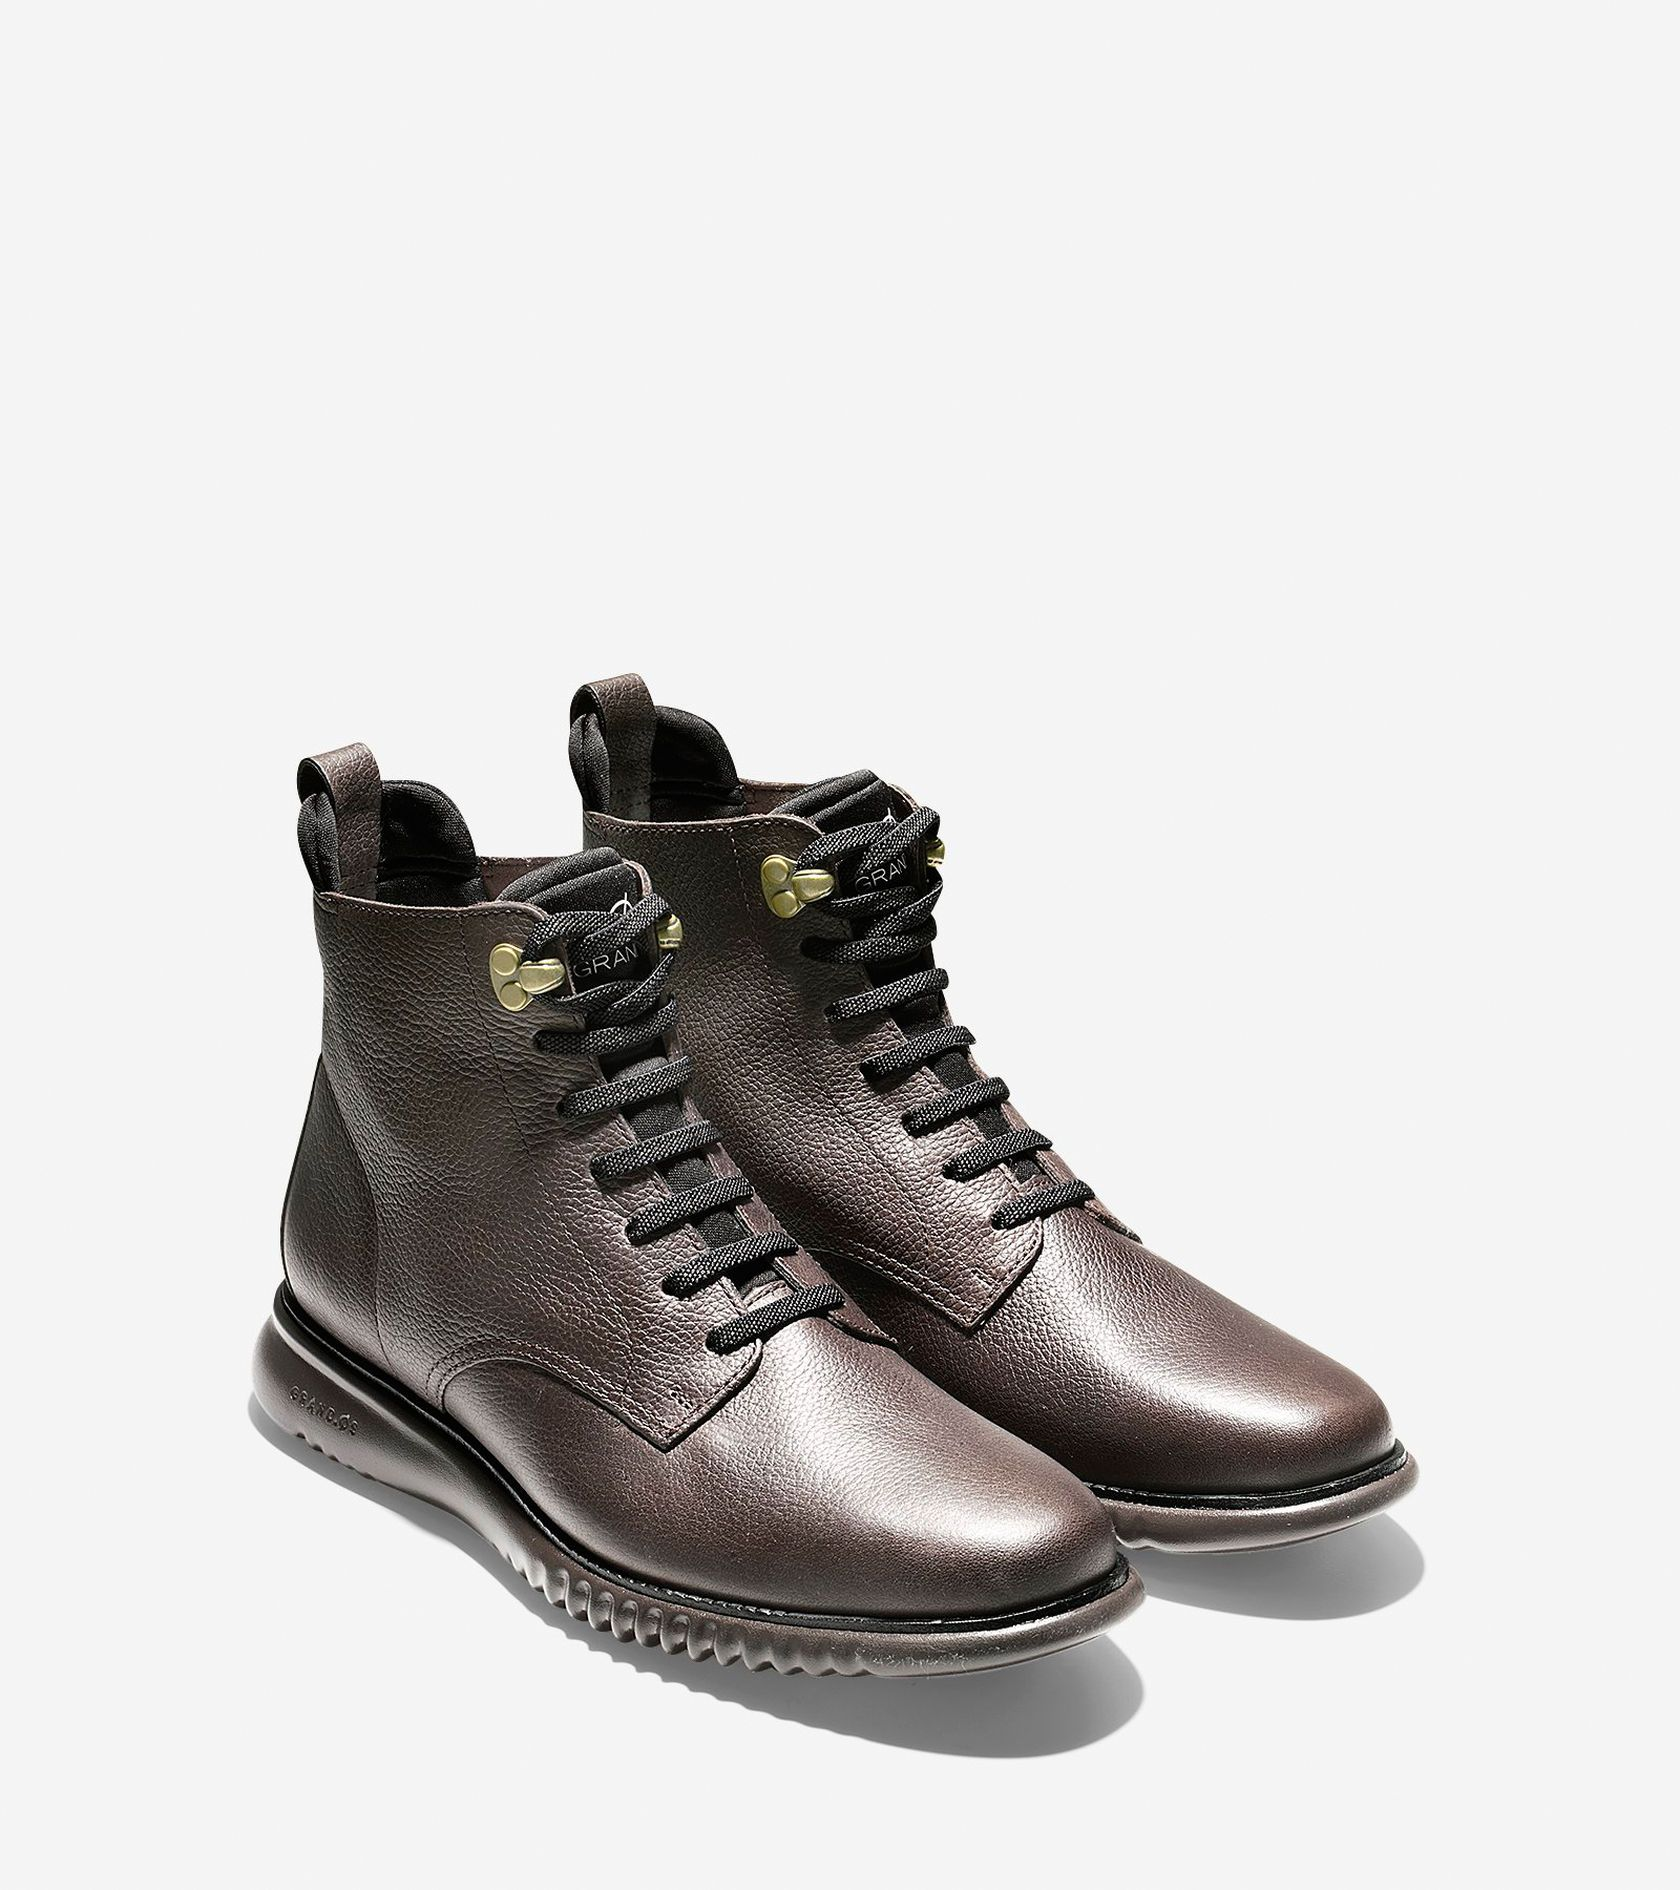 classcic hoard as a rare commodity buying now Men's 2.ZEROGRAND Waterproof City Boots in Java | Cole Haan ...